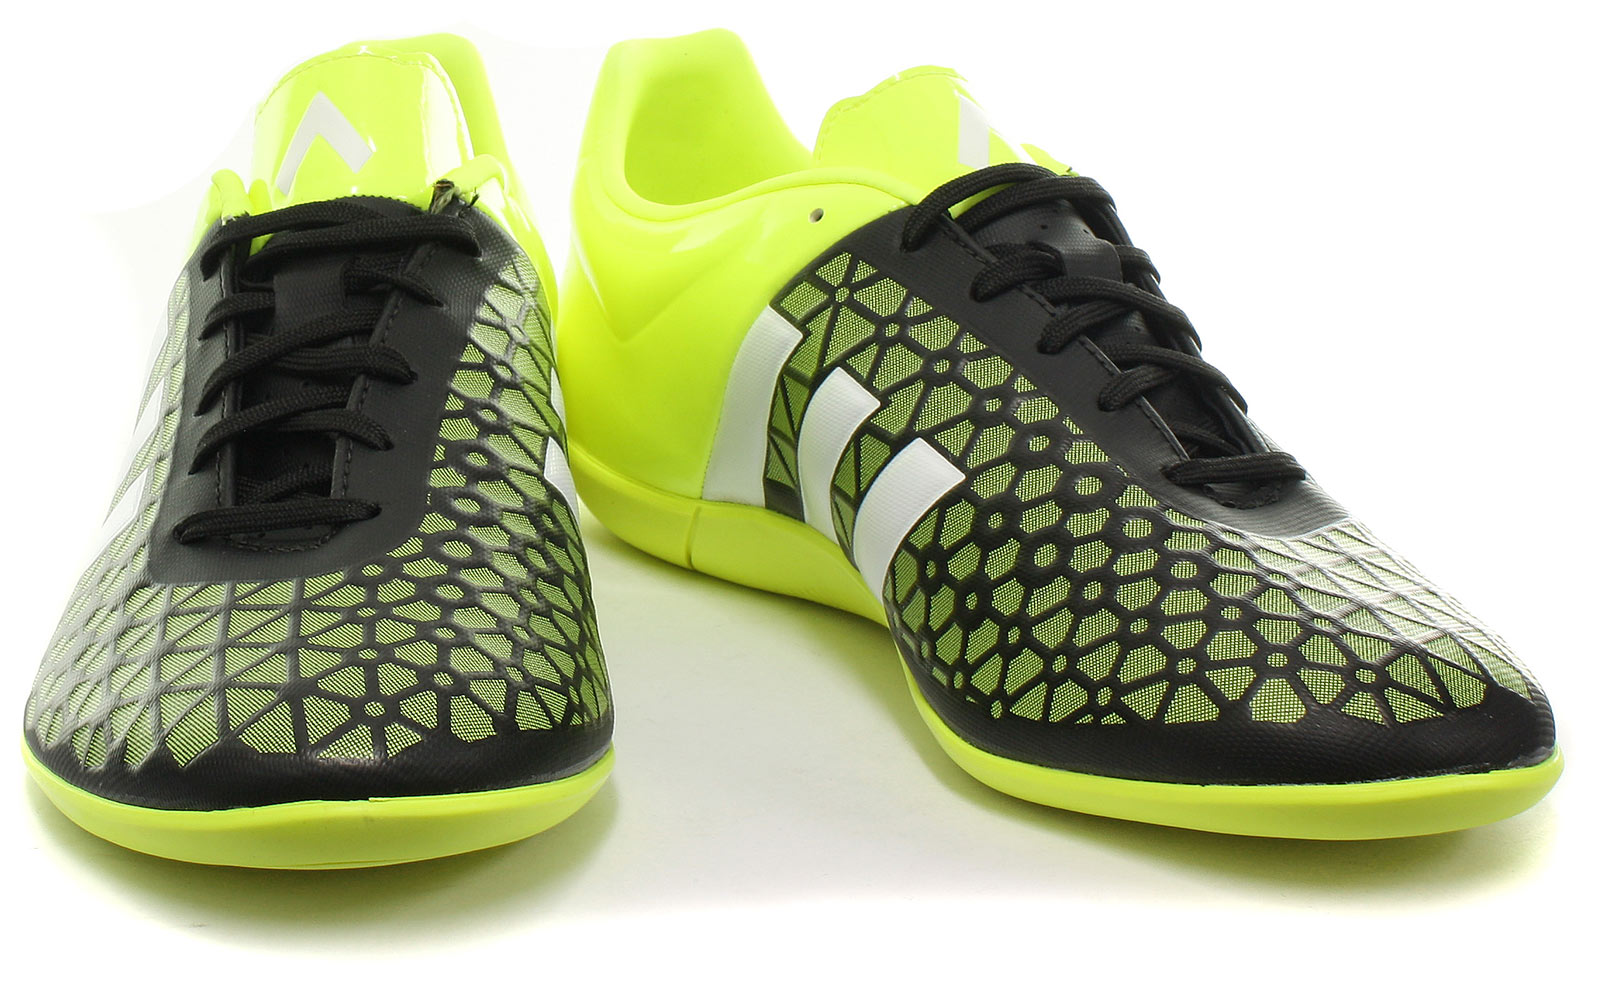 51f9eb129b4 new zealand adidas ace 15.1 boost indoor soccer b25500 2119a 282b2  italy new  adidas ace 15 3 in mens indoor 49b23 aad14